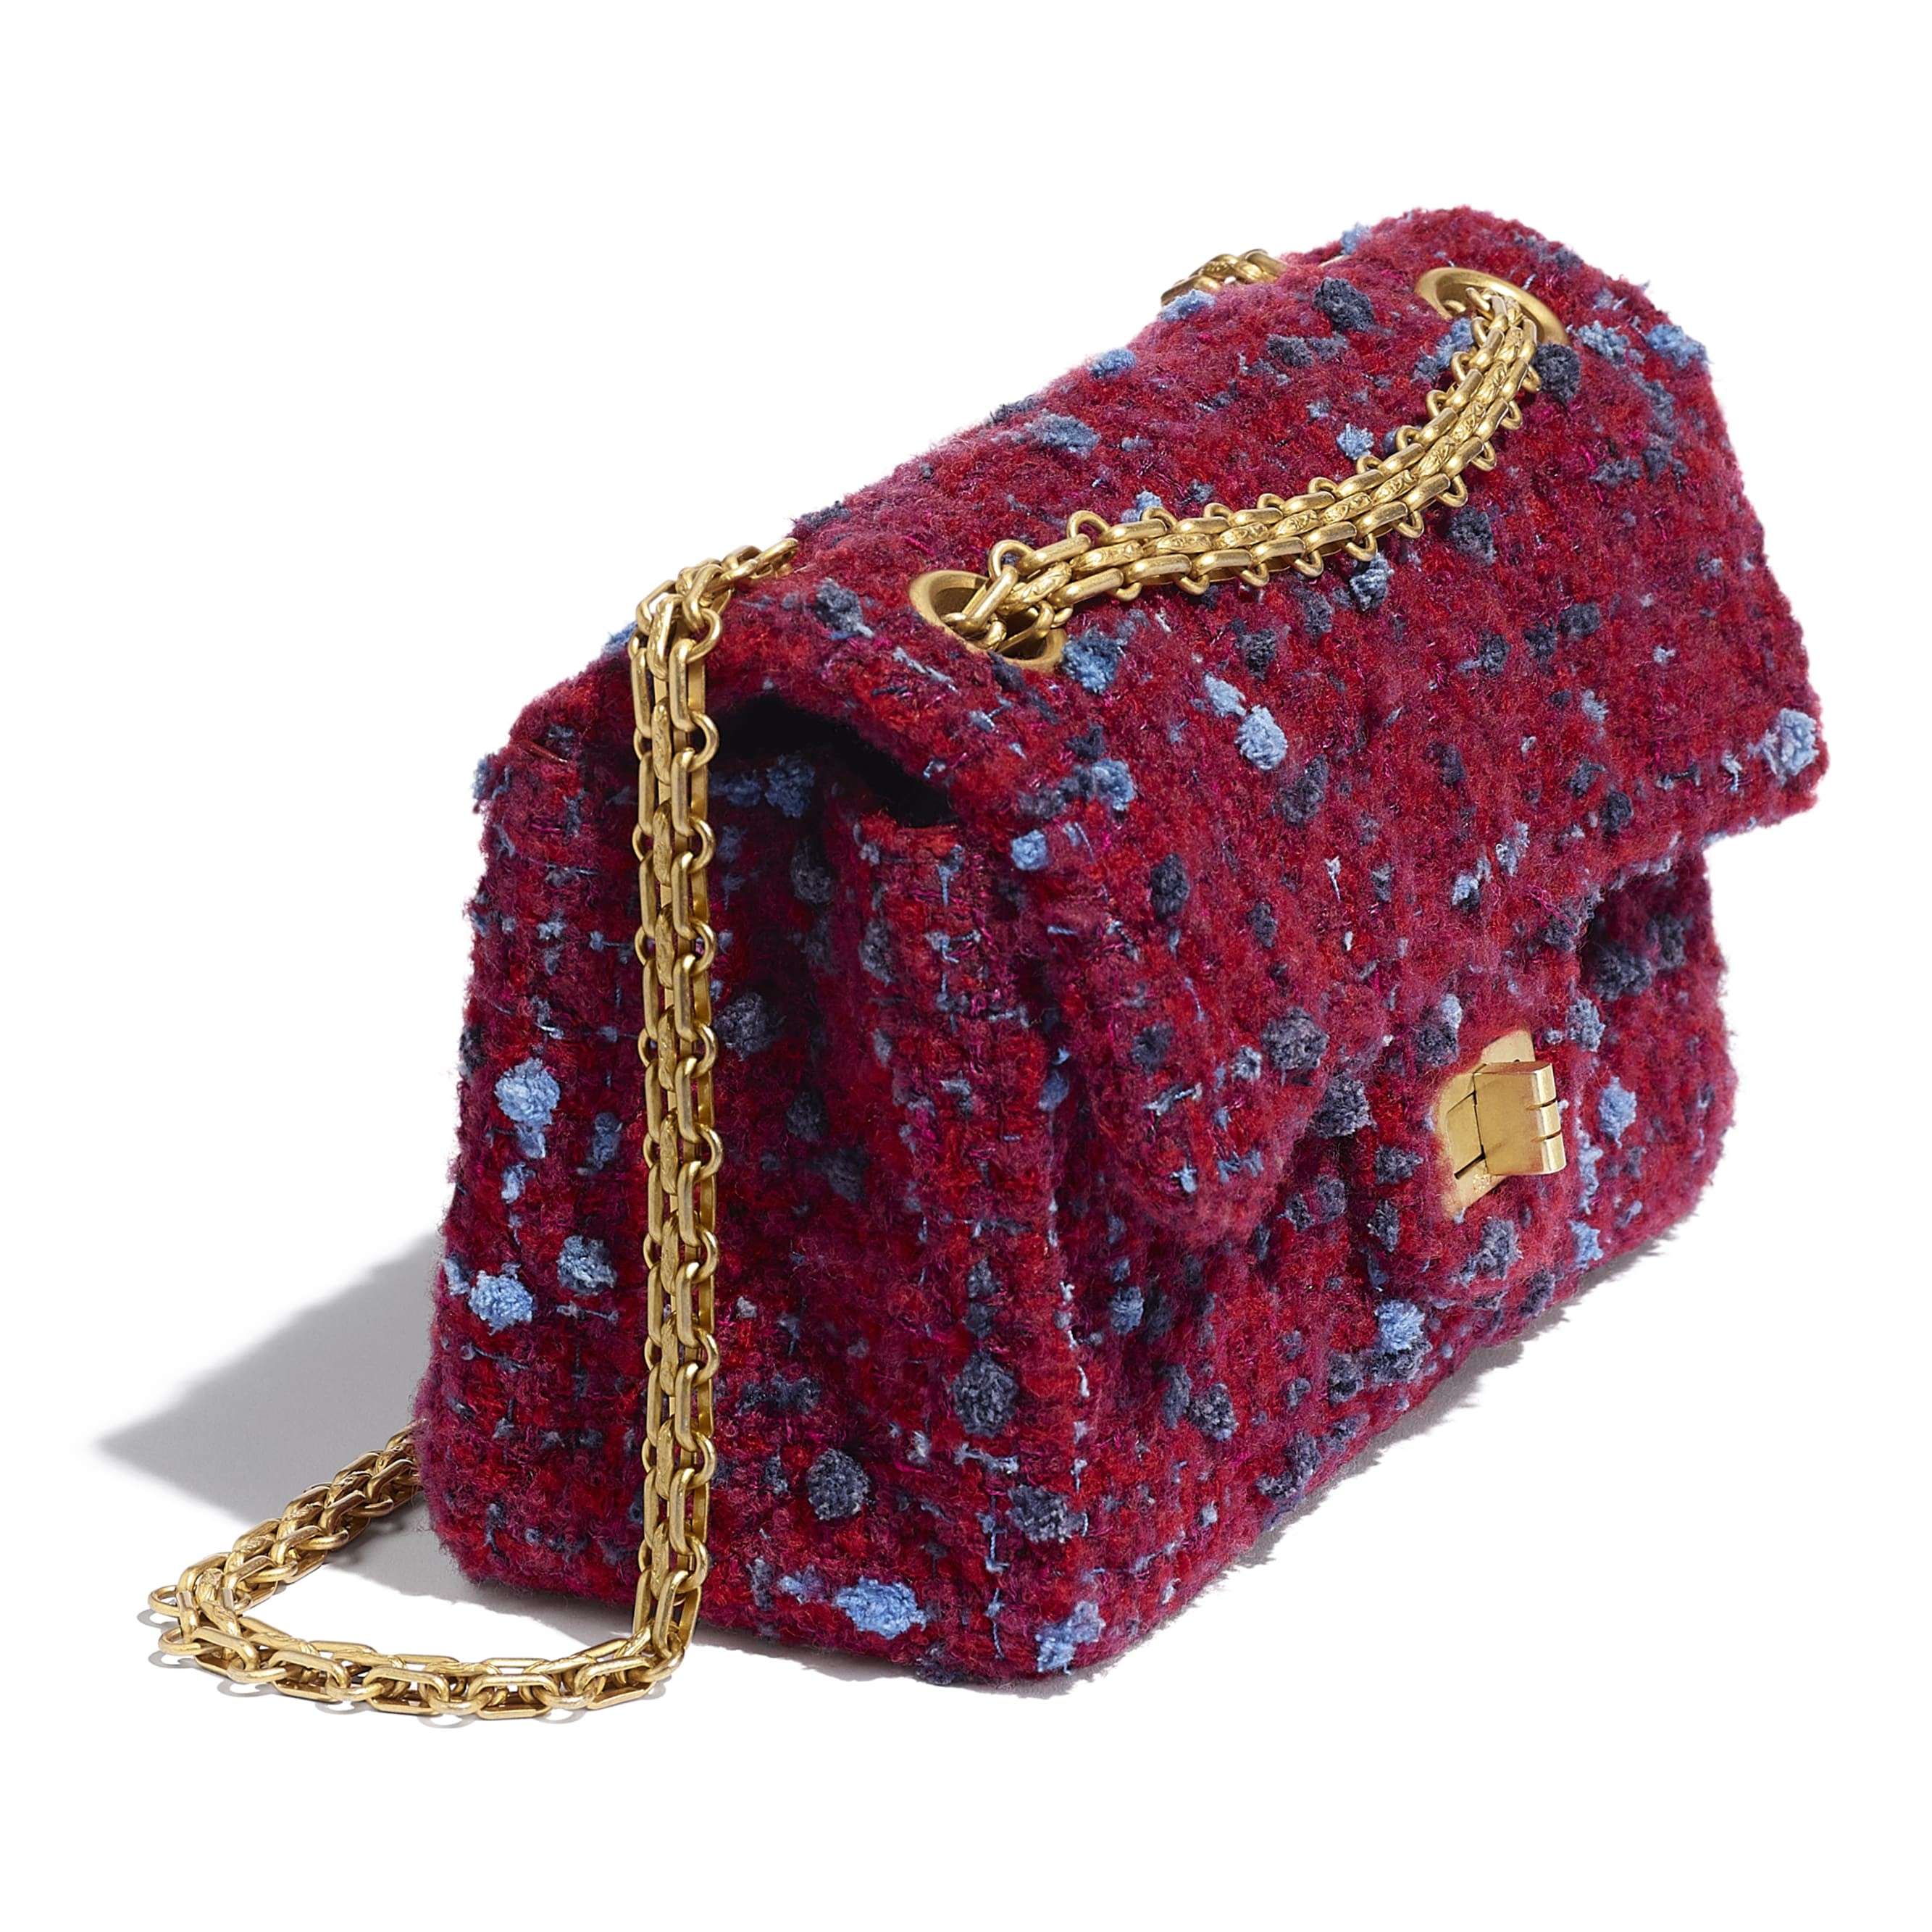 Mini 2.55 Handbag - Burgundy, Blue & Grey - Tweed & Gold Metal - CHANEL - Extra view - see standard sized version